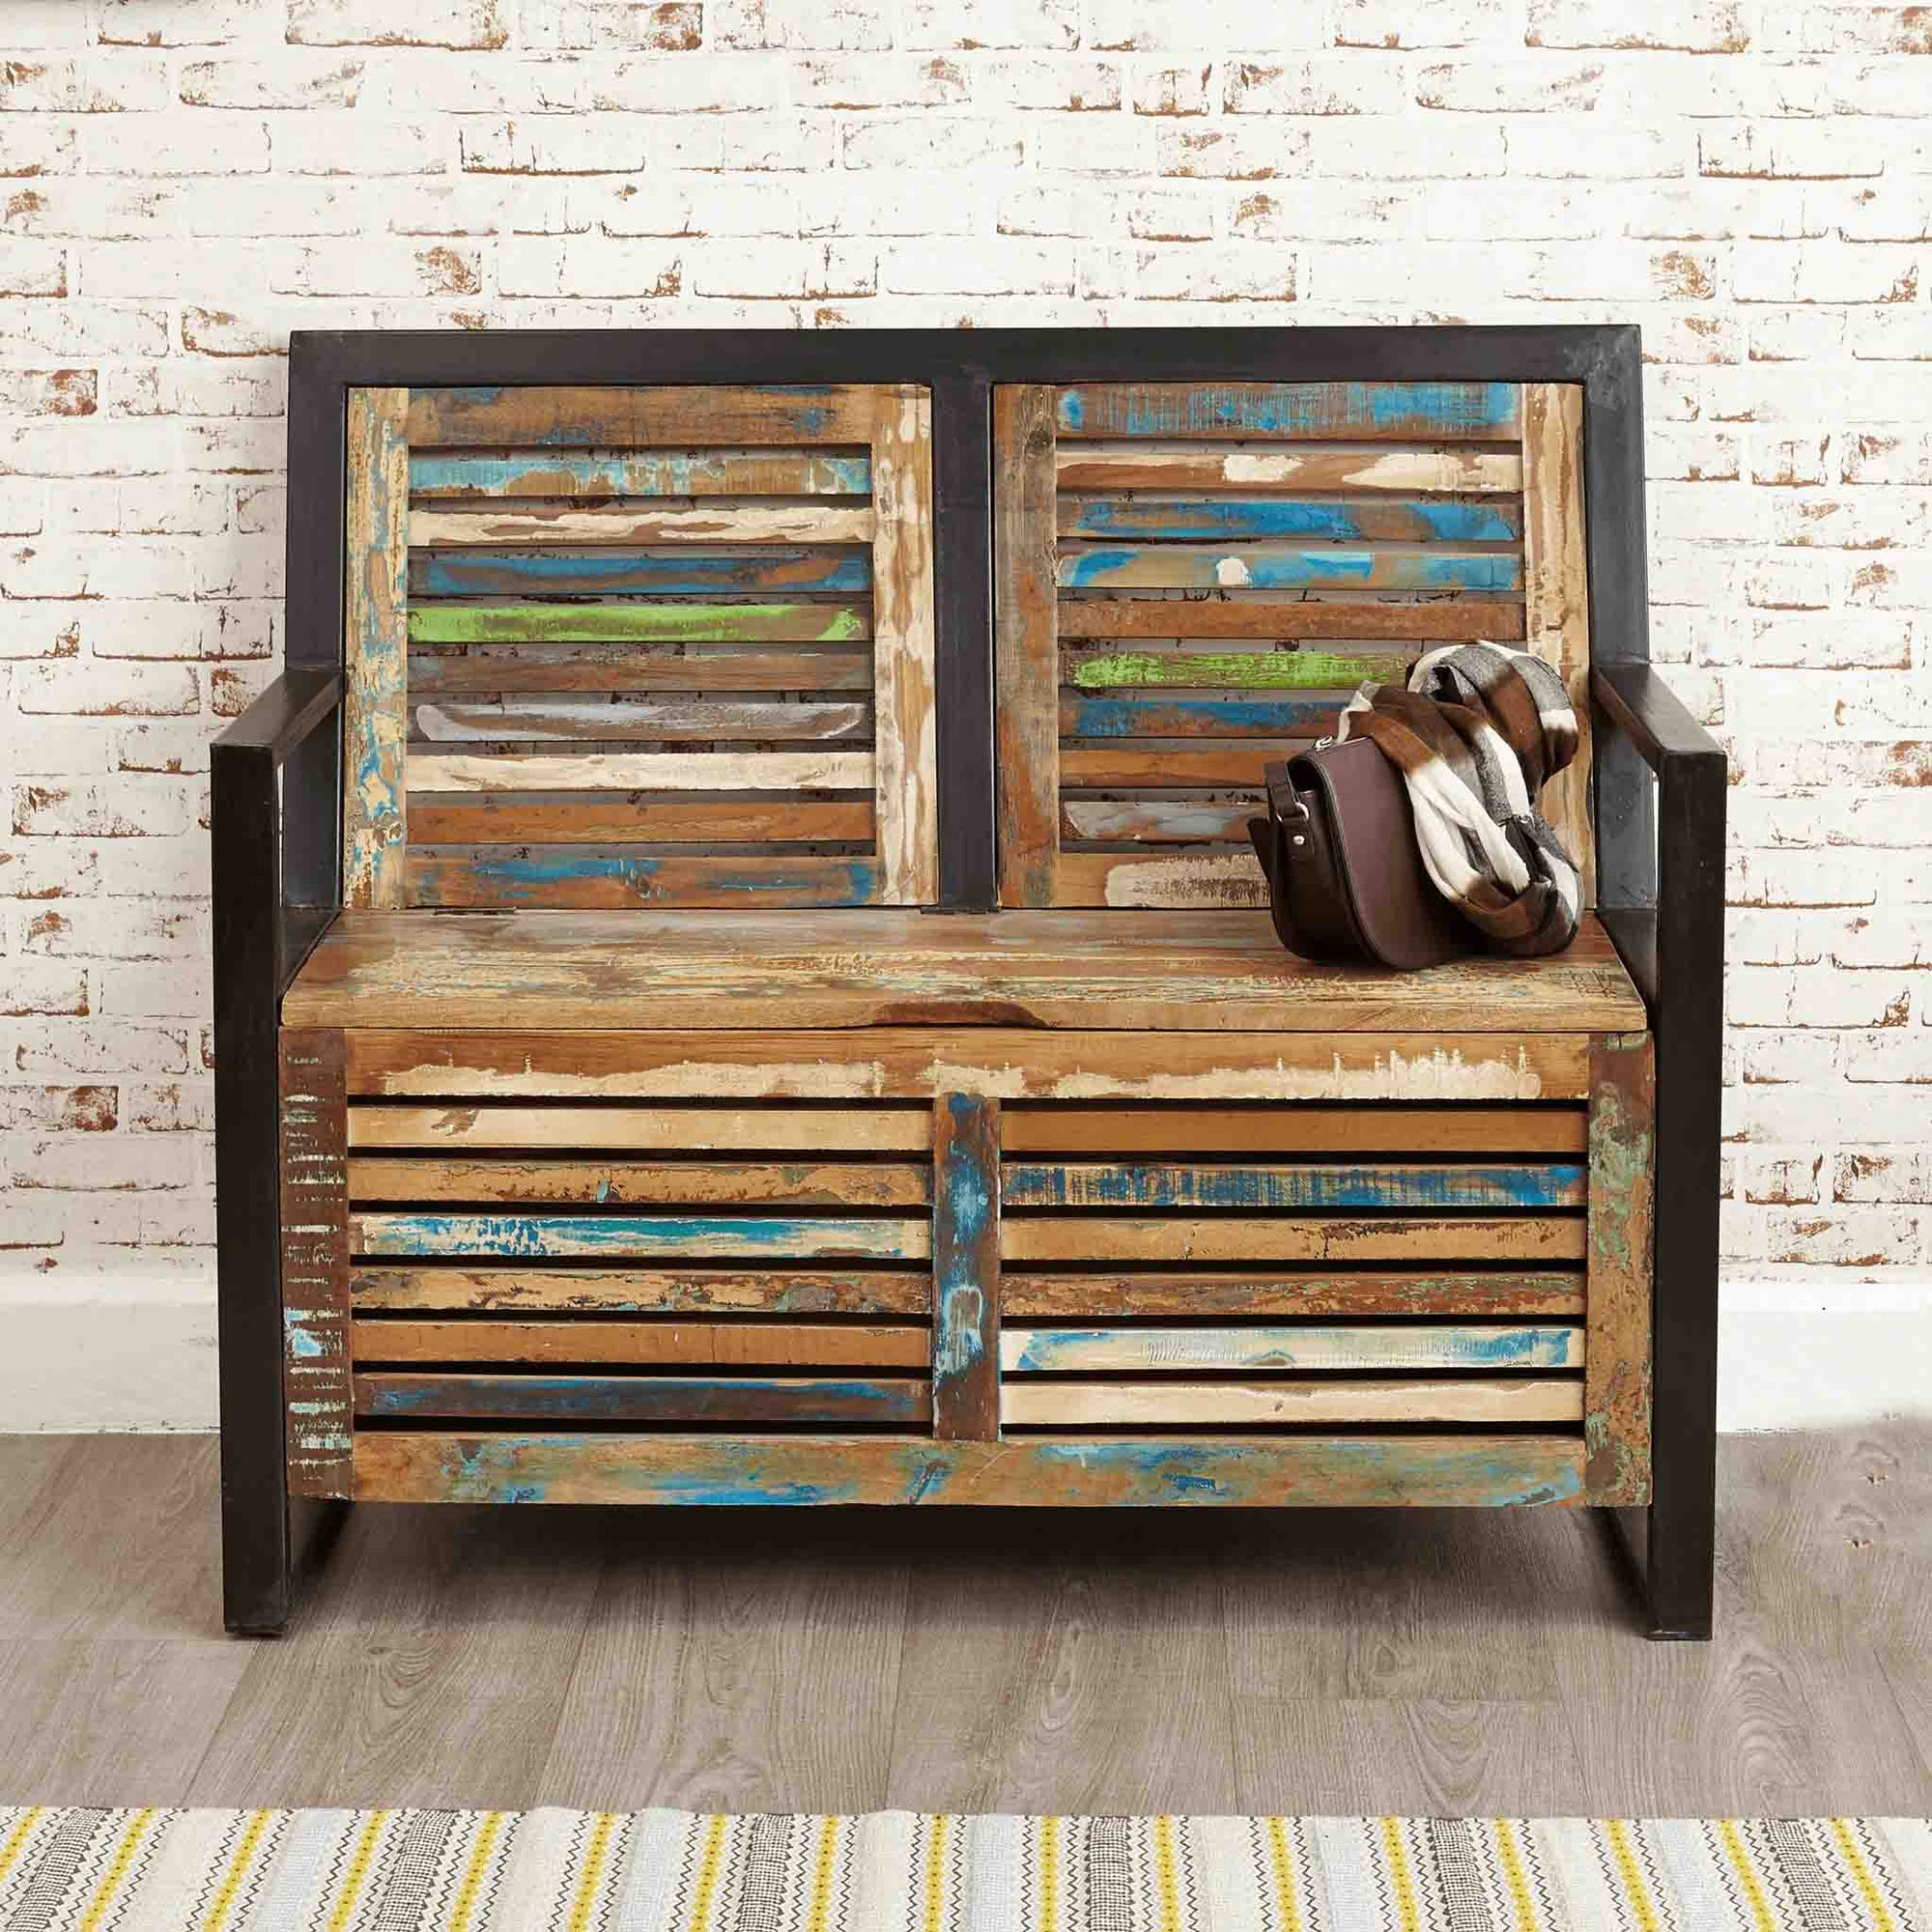 The Urban Chic Industrial Reclaimed Wood Monks Storage Bench from Roseland Furniture